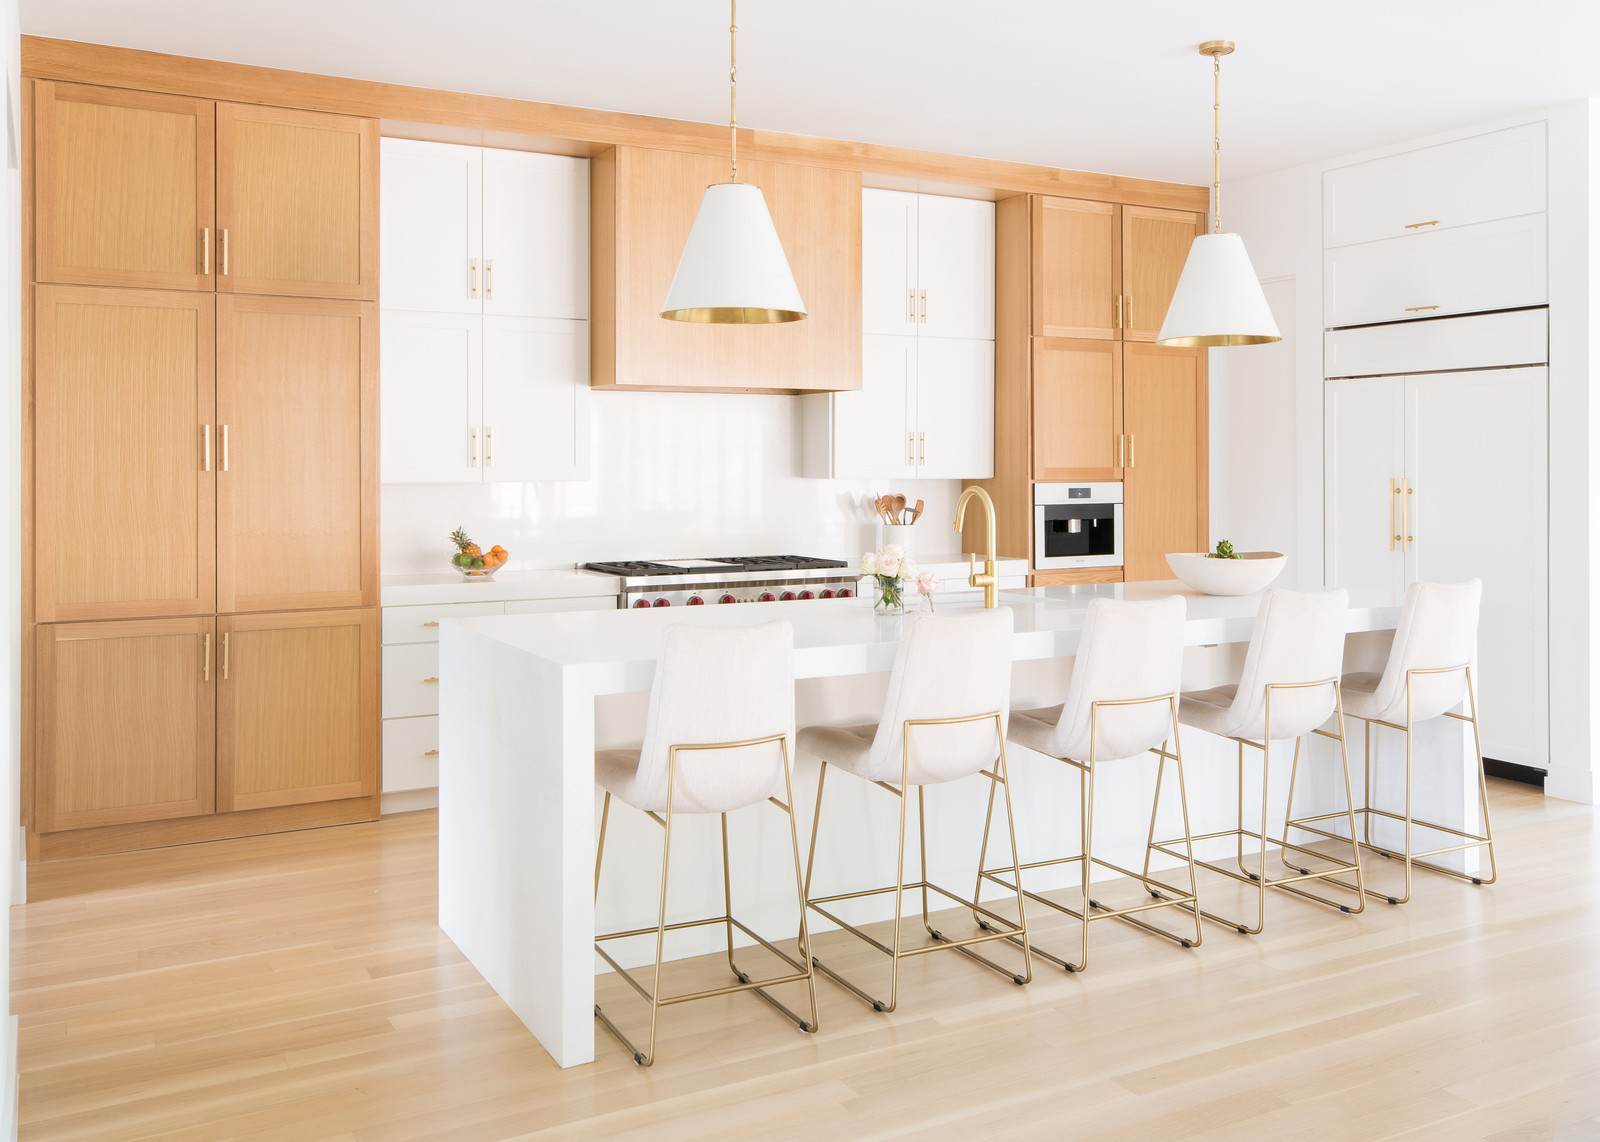 11 Most Fabulous Kitchen Paint Colors With Oak Cabinets Combinations You Must Know Aprylann